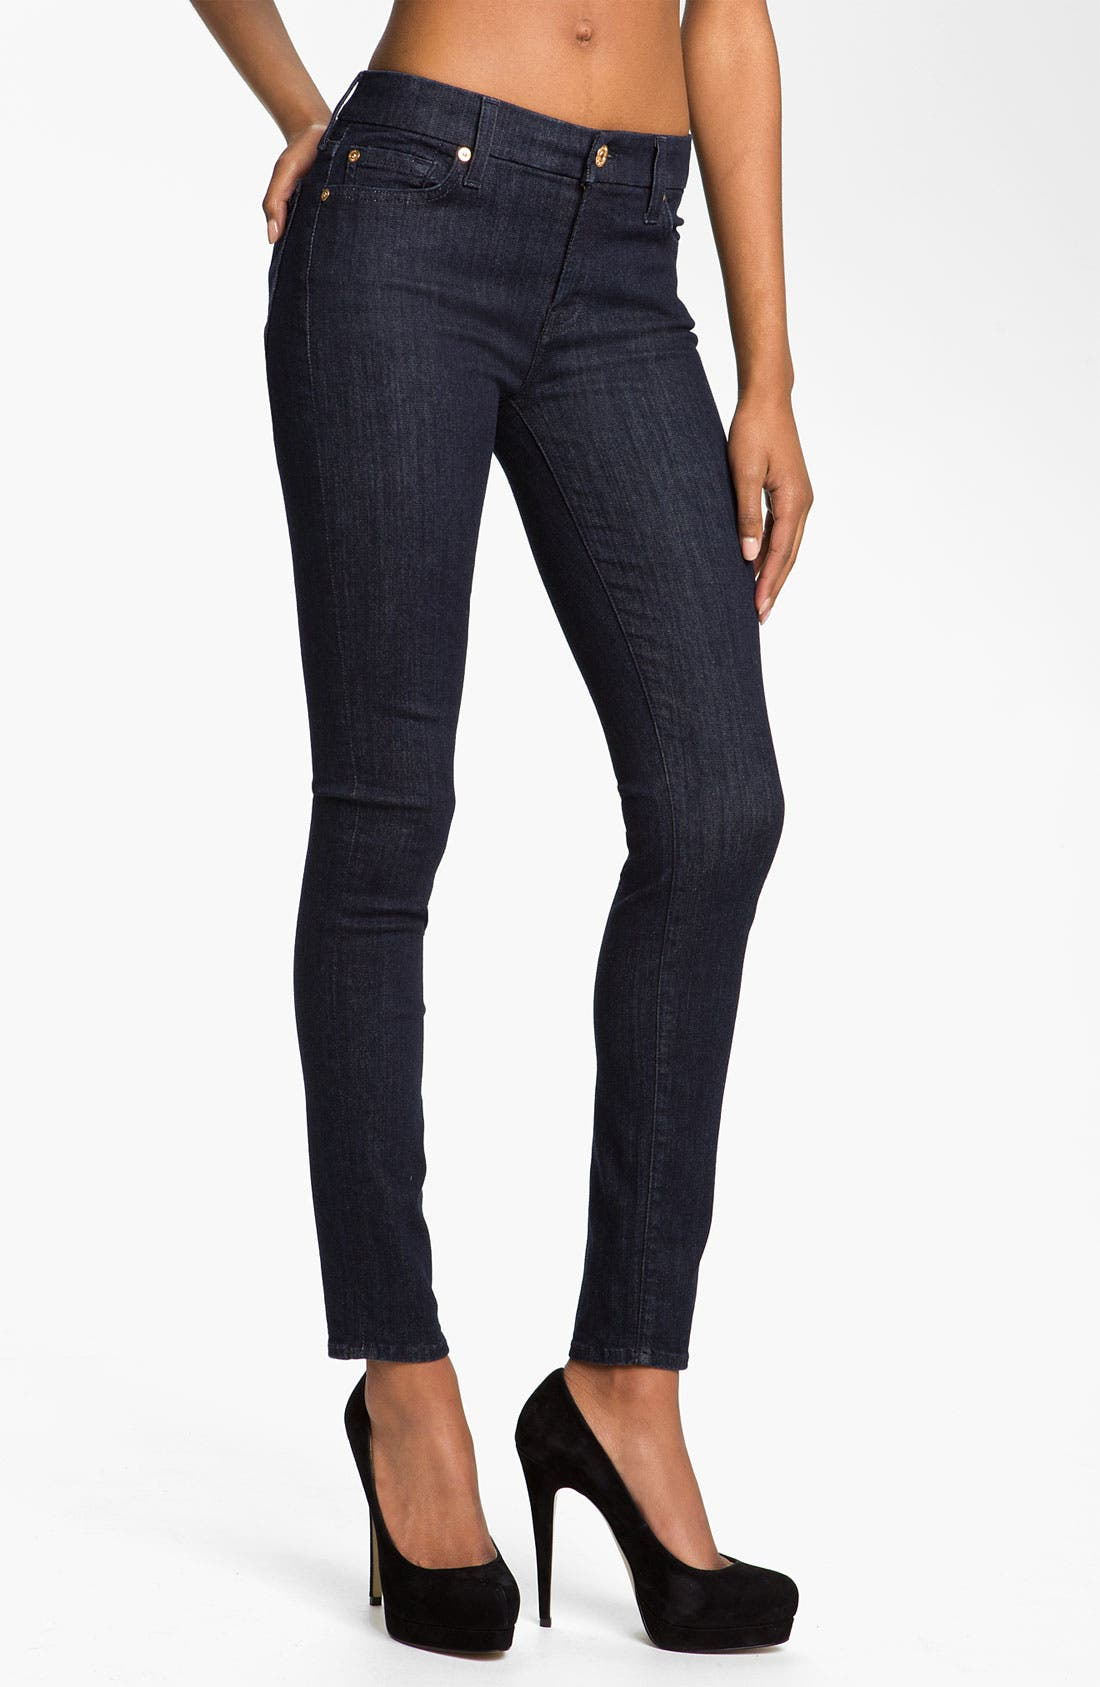 Main Image - 7 For All Mankind® 'Slim Illusion' Skinny Stretch Jeans (Rinse)